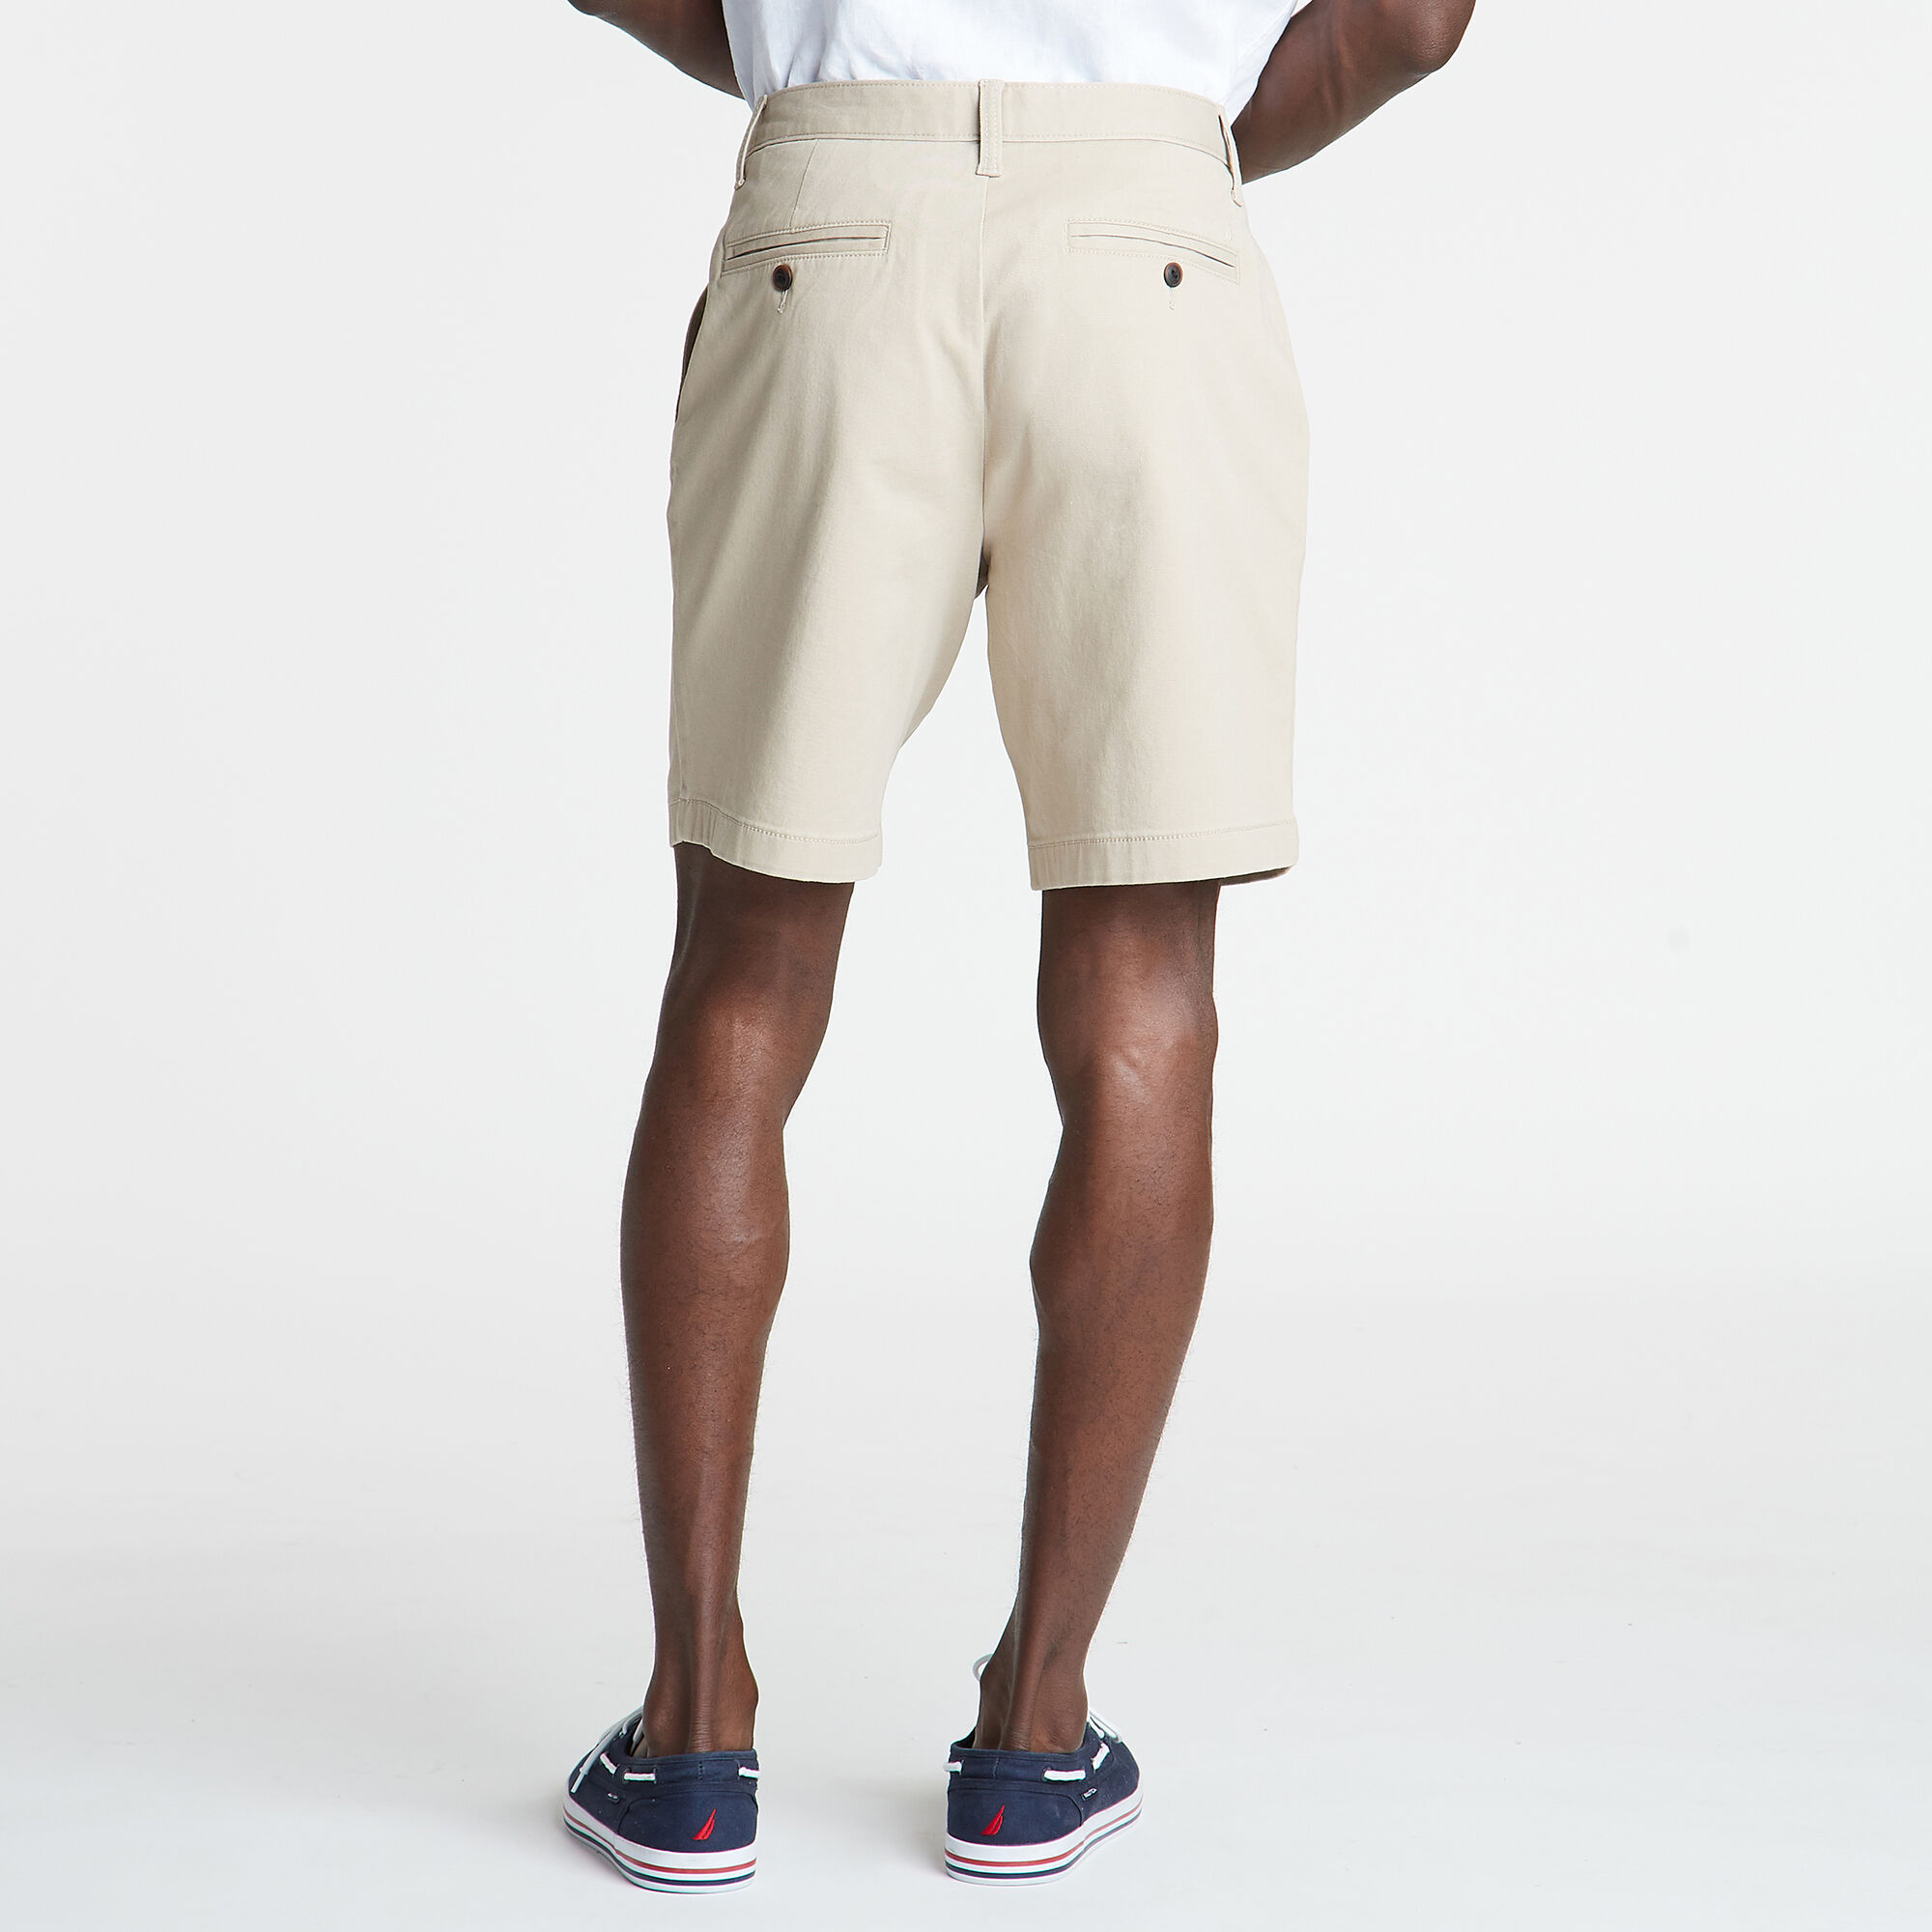 Nautica-Mens-8-5-034-Classic-Fit-Deck-Short-With-Stretch thumbnail 49